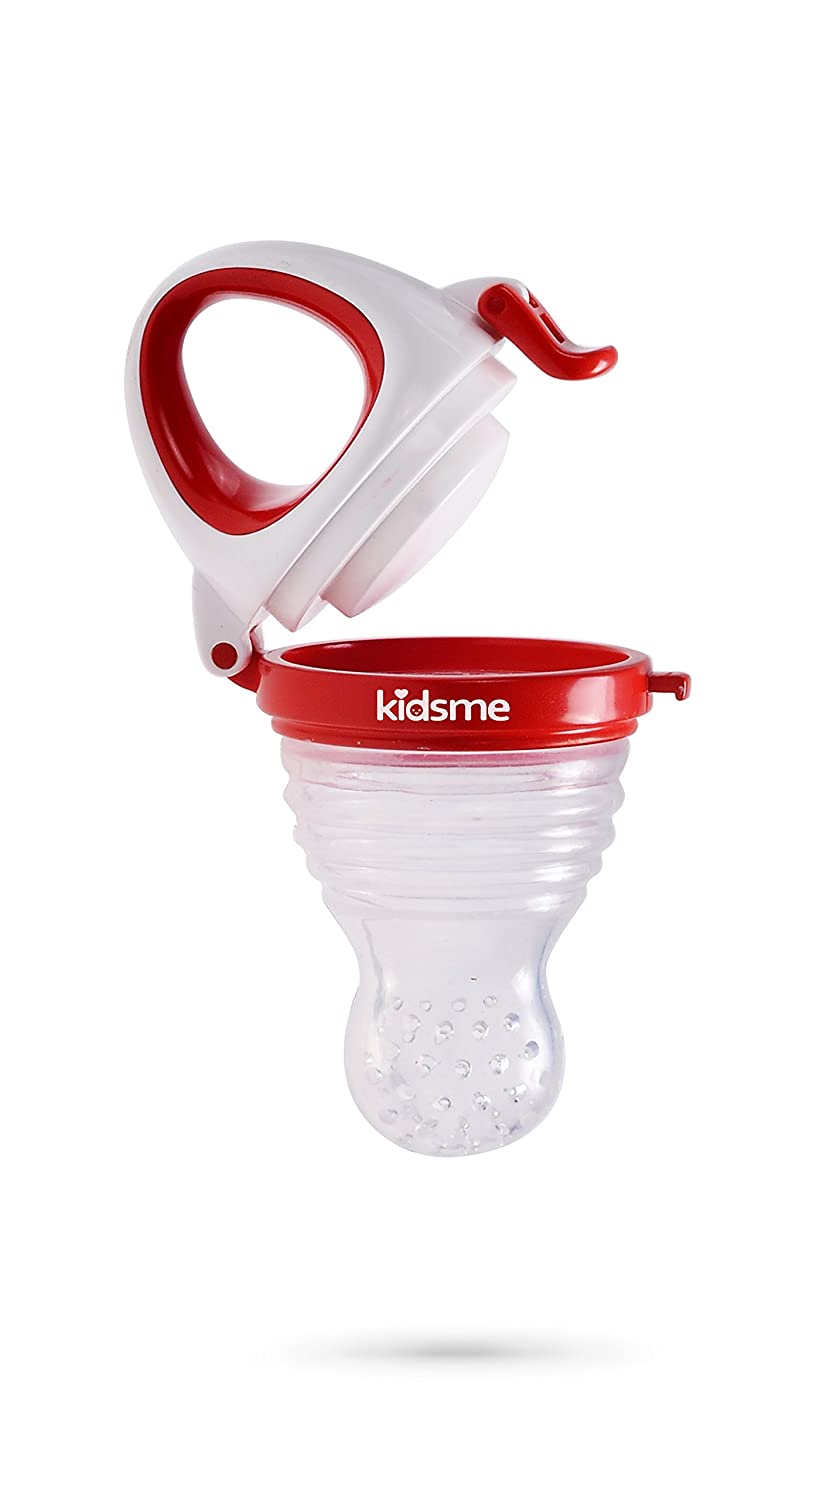 Kidsme Food Feeder Plus (XLarge size) by Kidsme   B00M6N6RZ6